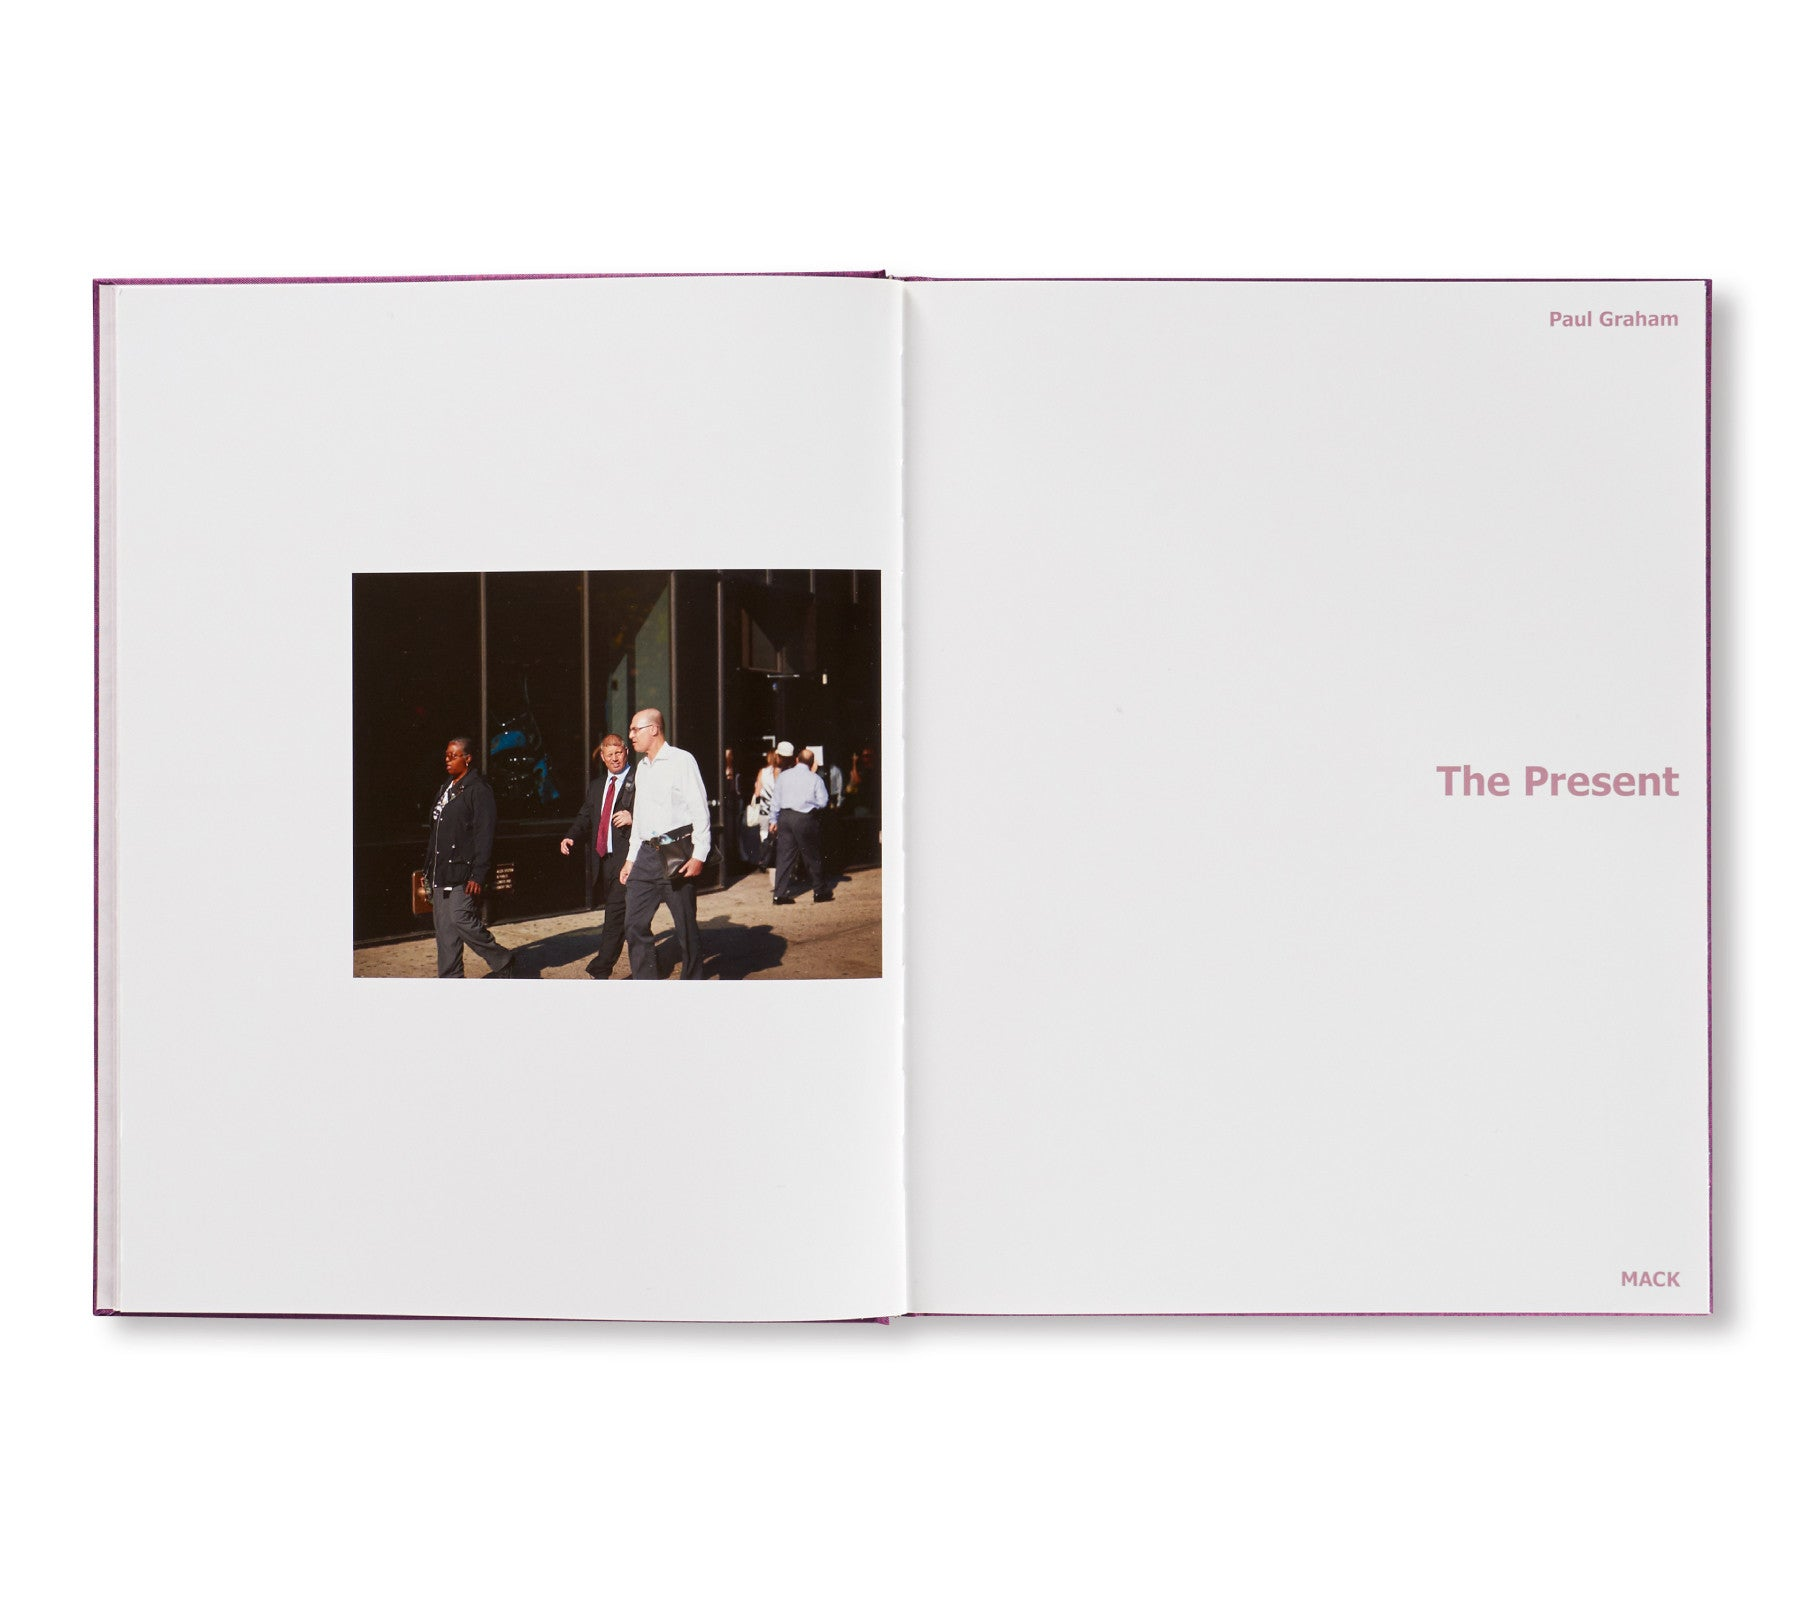 THE PRESENT by Paul Graham [SPECIAL EDITION / SIGNED]